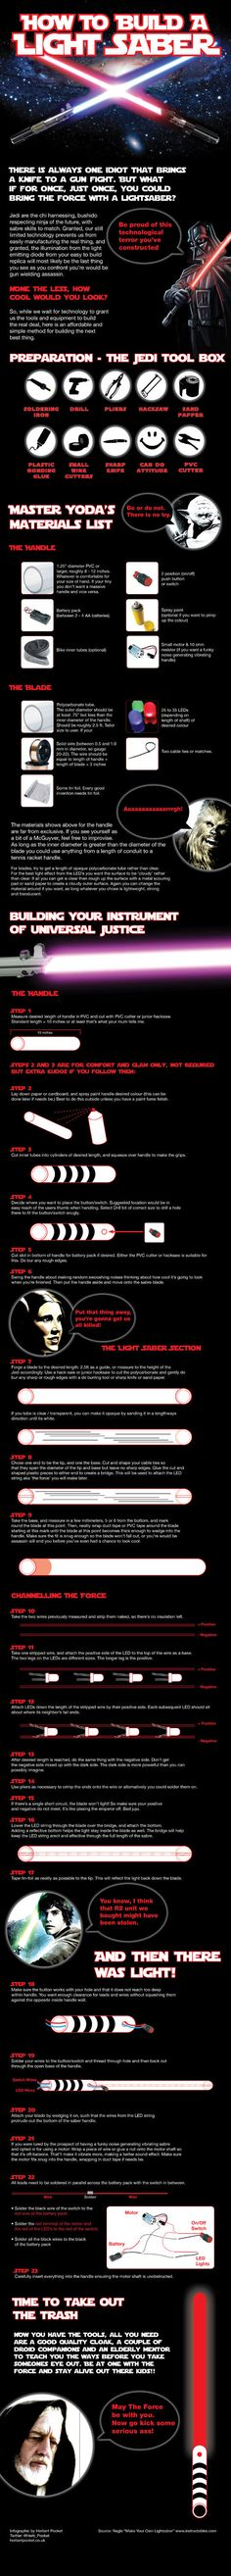 #INFOGRAPHIC: HOW TO MAKE YOUR OWN LIGHTSABER    Soon my precious...